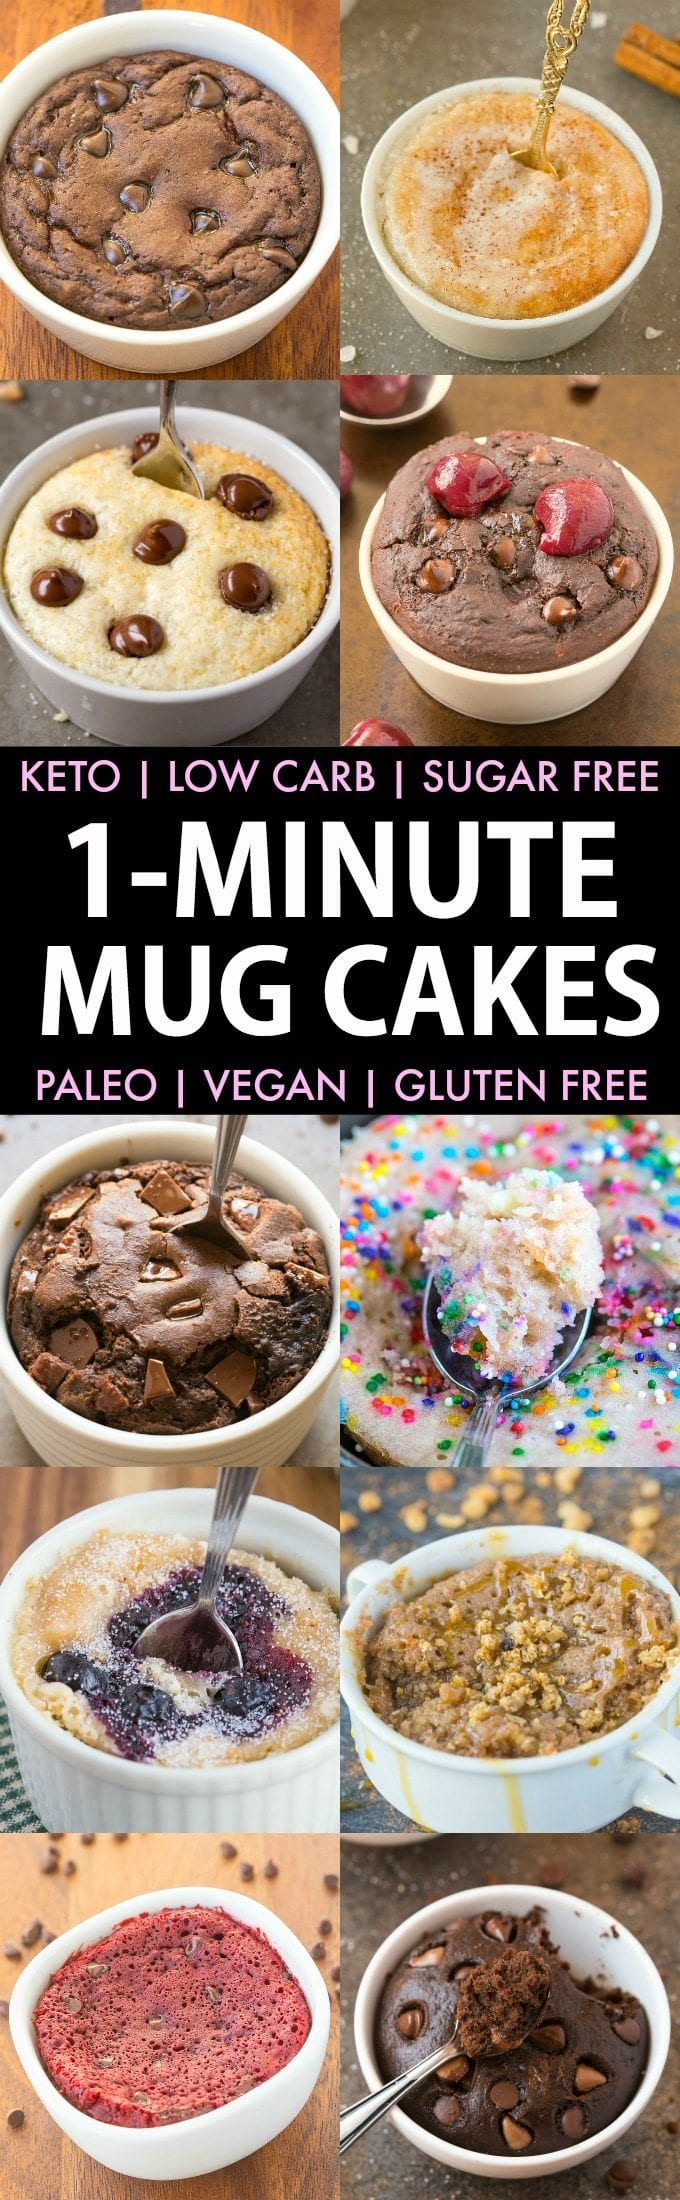 1-Minute Keto Mug Cakes (Paleo, Vegan, Low Carb, Sugar Free)- Easy mug cake, mug muffin and mug brownie recipes which take less than a minute and perfect single serve healthy treat- NO butter, grains or eggs needed! #keto #ketodessert #mugcake | Recipe on thebigmansworld.com